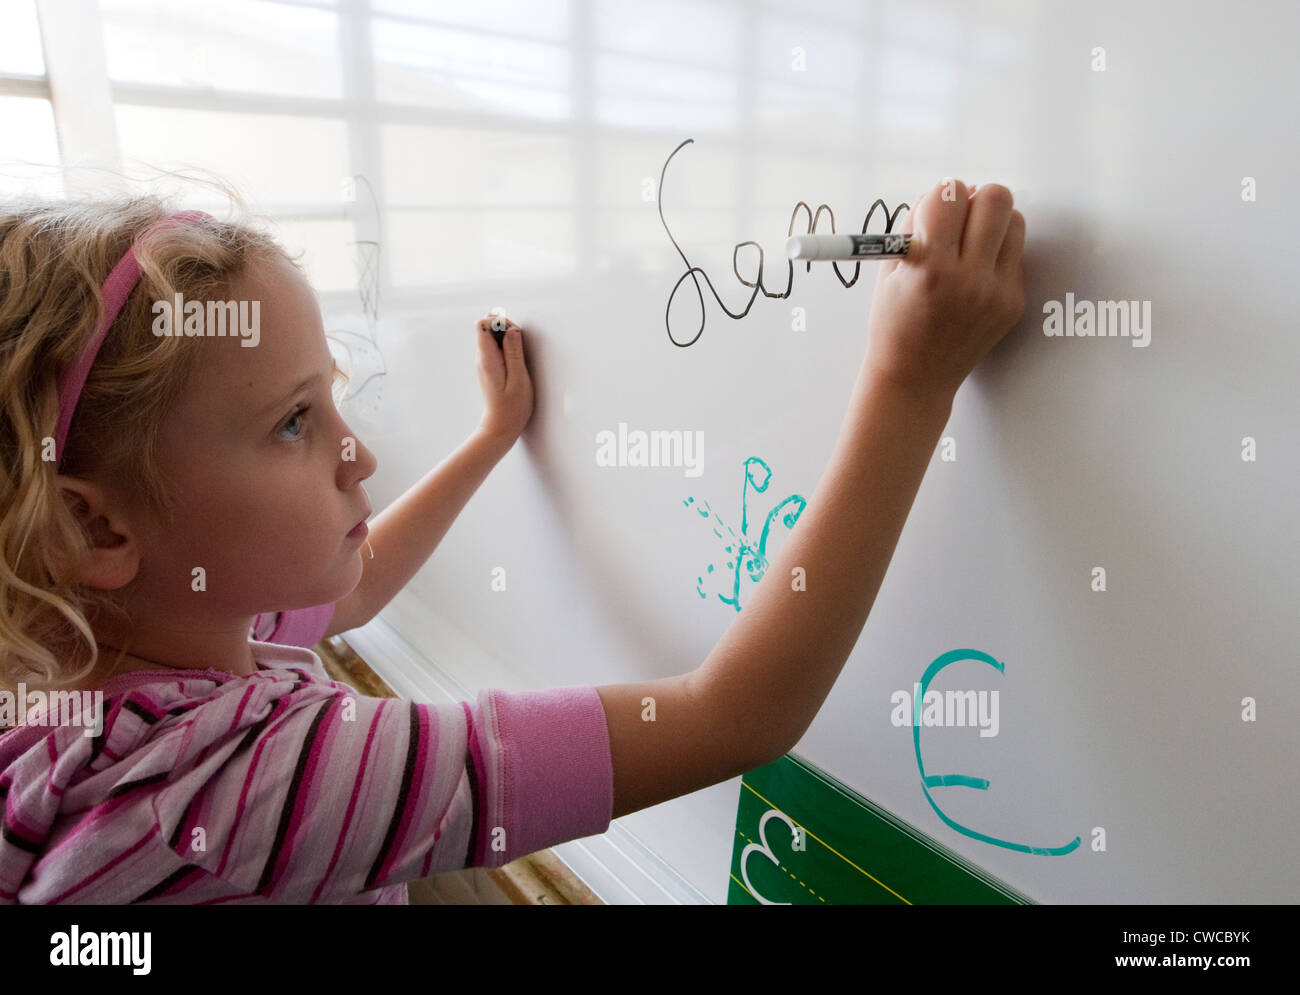 7 year old girl practices writing her name in cursive on white board - Stock Image